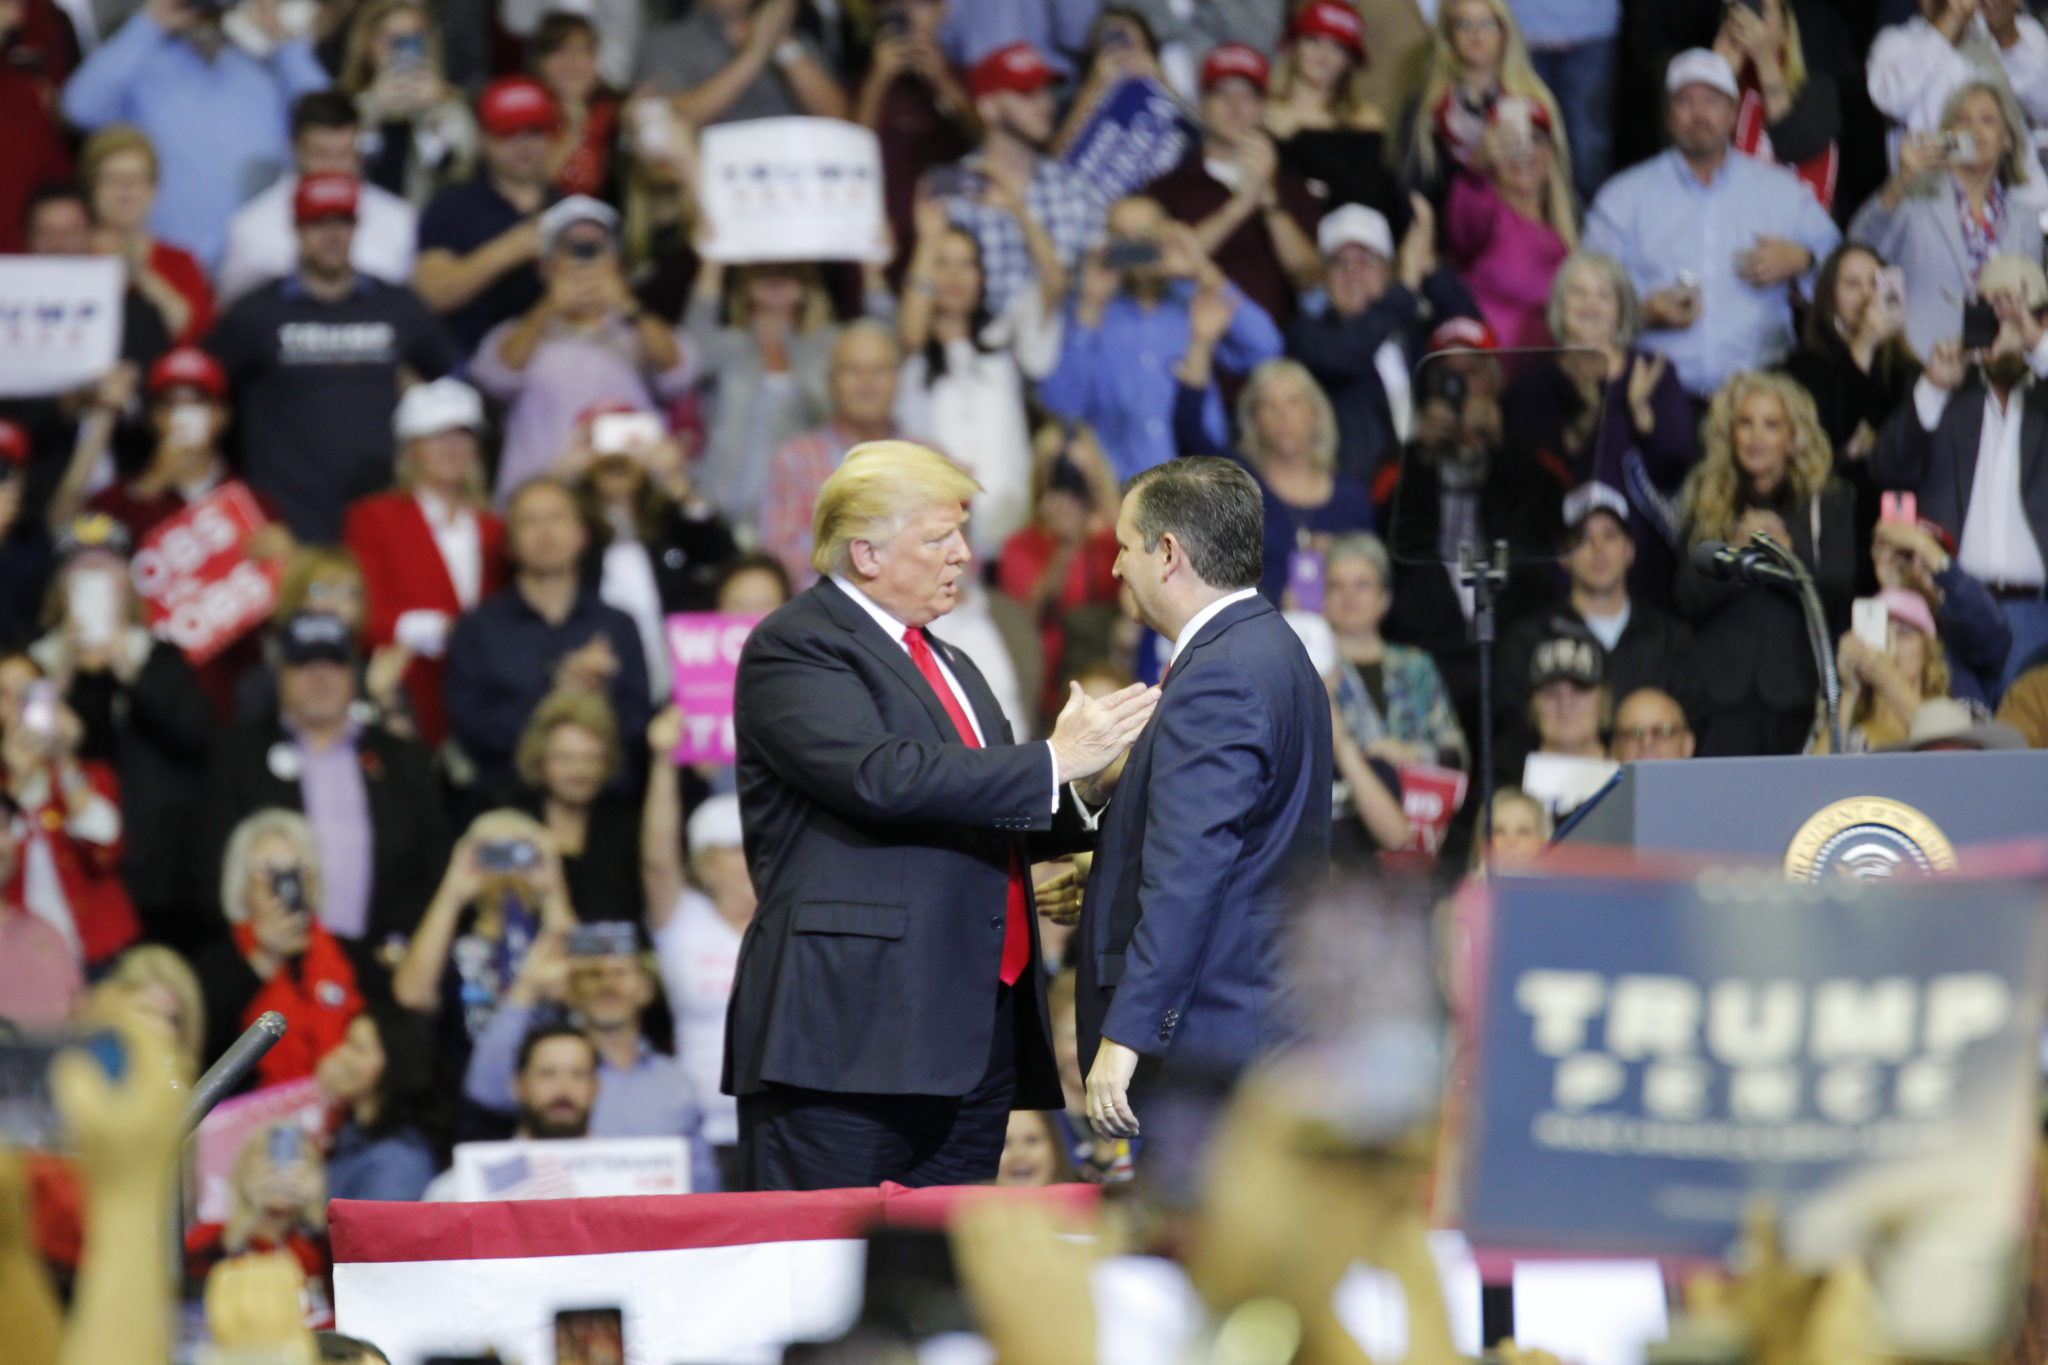 Donald Trump and Ted Cruz have a brief tête-à-tête at the MAGA rally in Houston in October 2018.